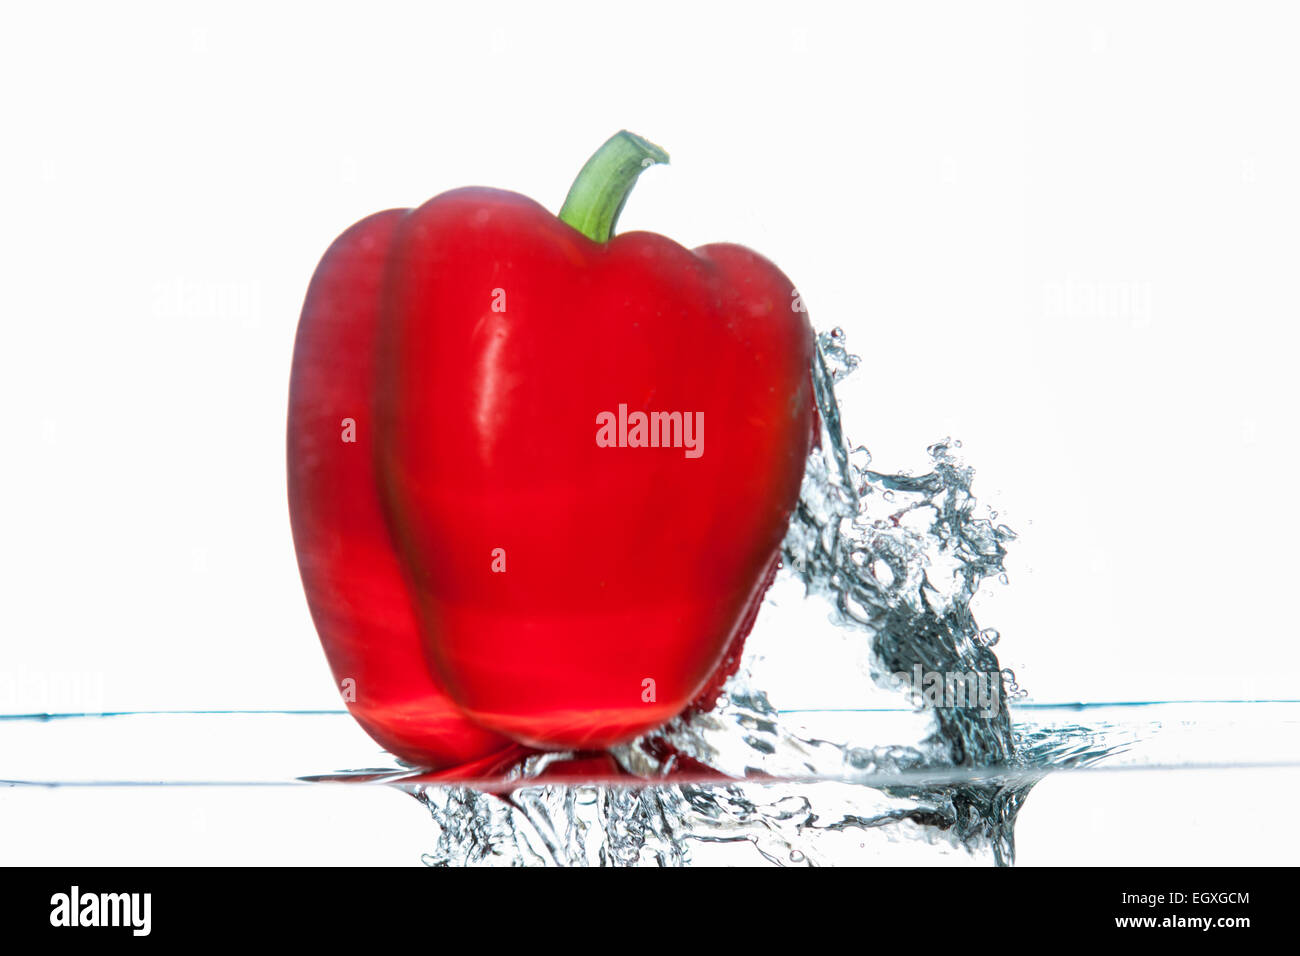 Red bell pepper shoots up out of water. - Stock Image